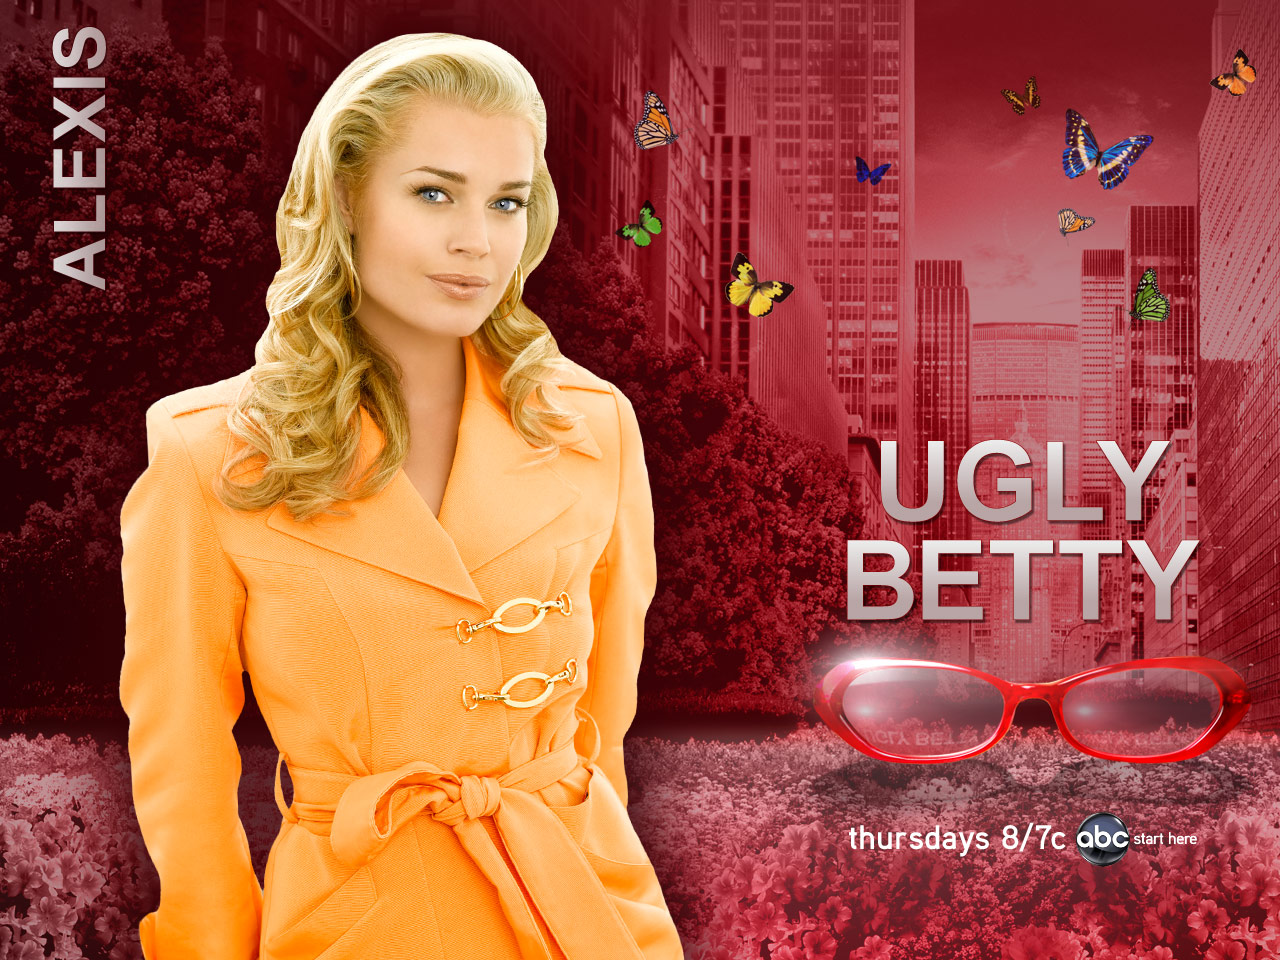 http://1.bp.blogspot.com/-gDfTbwV-VCY/TnYuzNRh2CI/AAAAAAAAAvs/3voKtNHPWyw/s1600/swift-attack-ugly-betty-alexis-wallpaper-abc.jpg